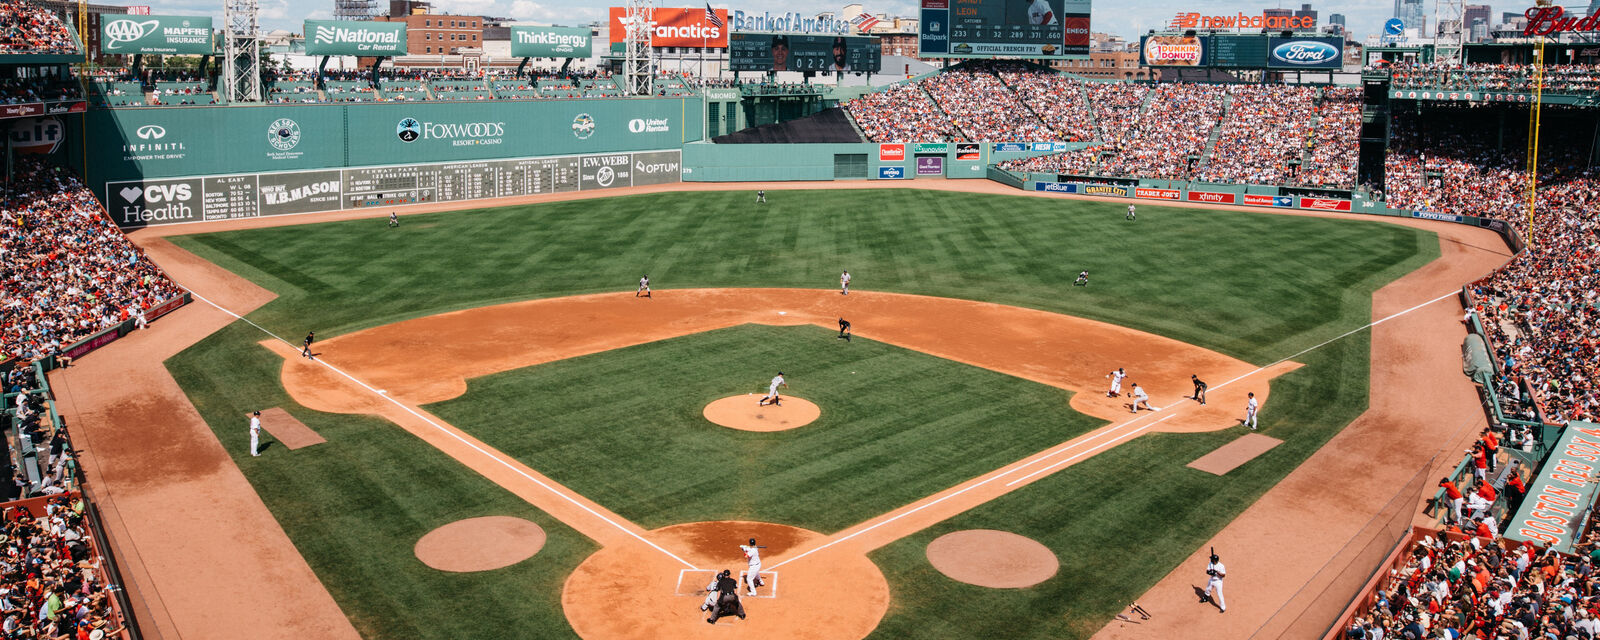 Miami Marlins at Boston Red Sox